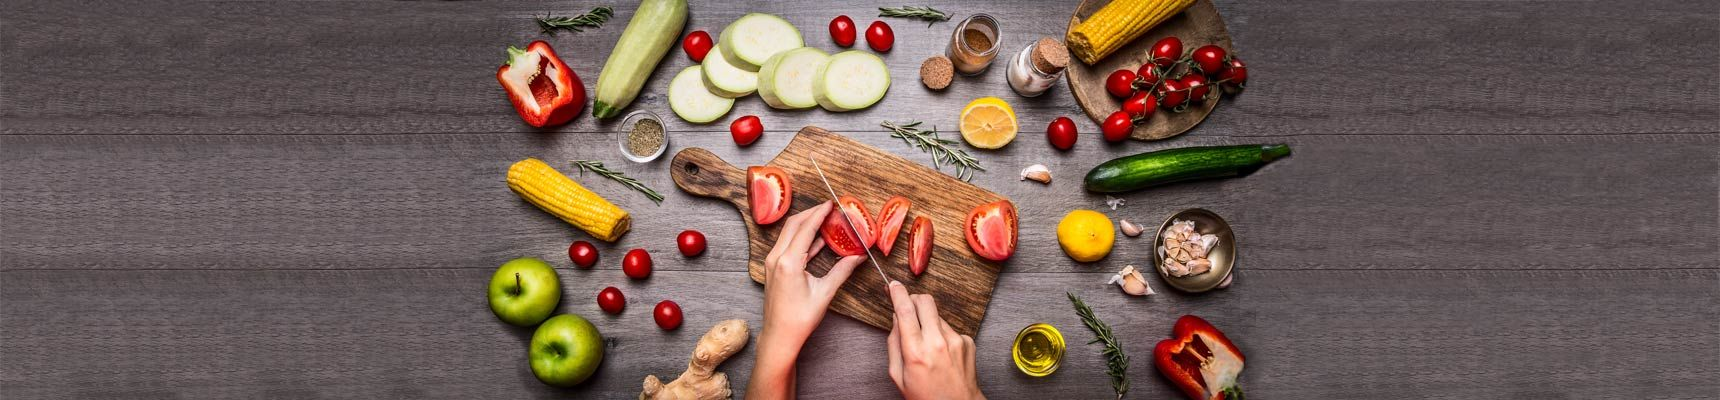 image of hands cutting up fruit and vegetables on cutting board